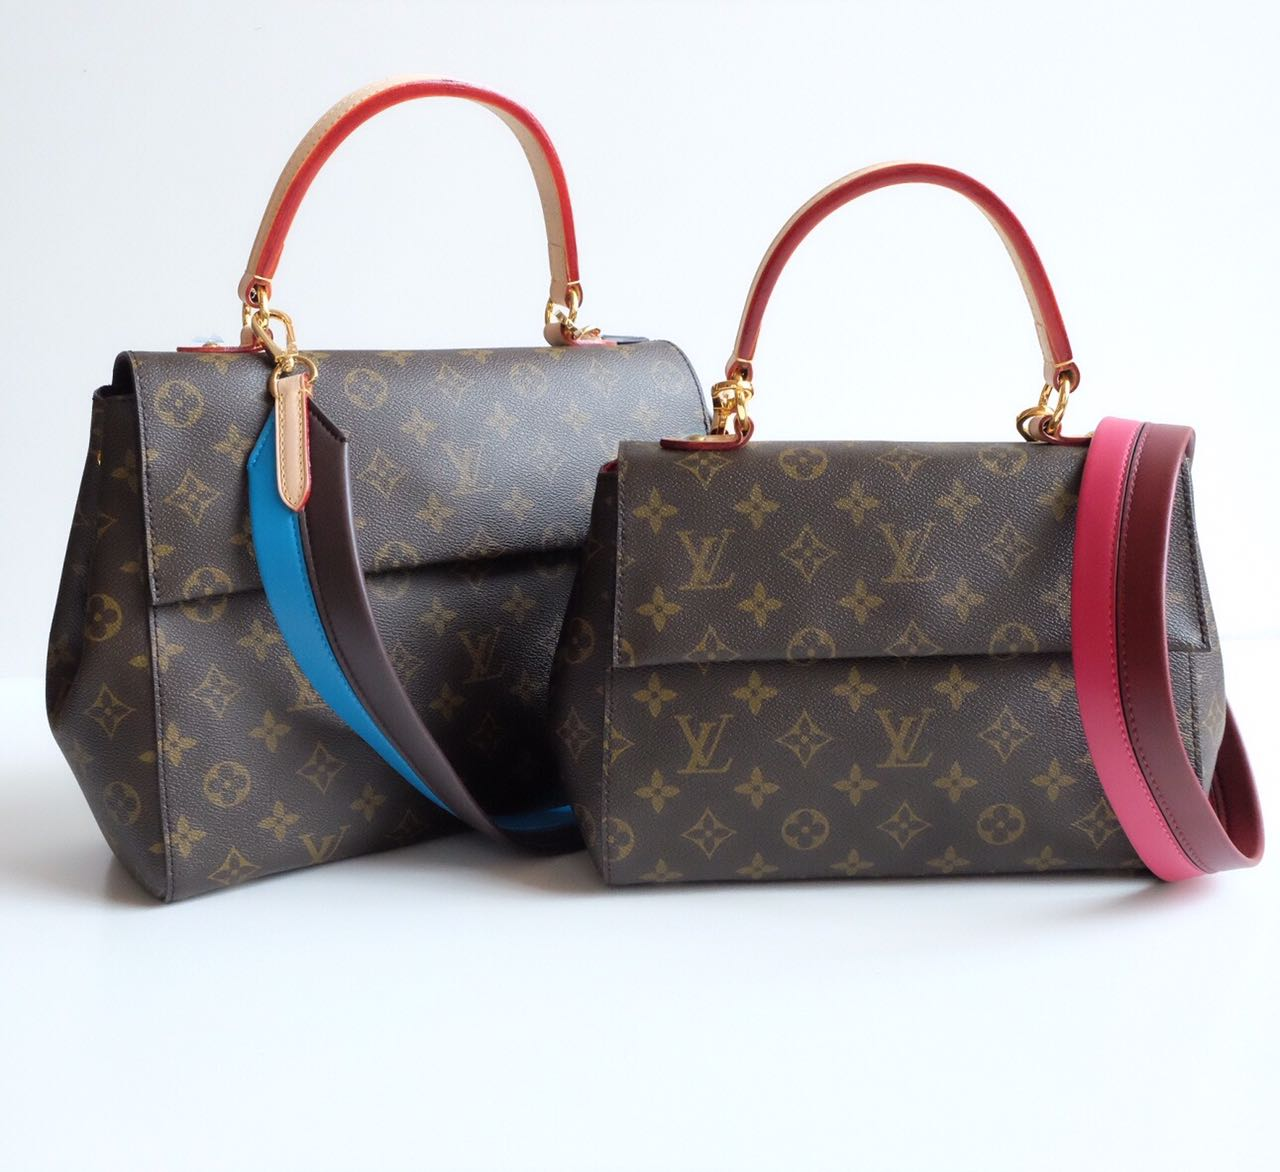 Kinda Kollection  Louis Vuitton Clunny Monogram Mirror Original Leather  Bag..Part 4 9965220bfe